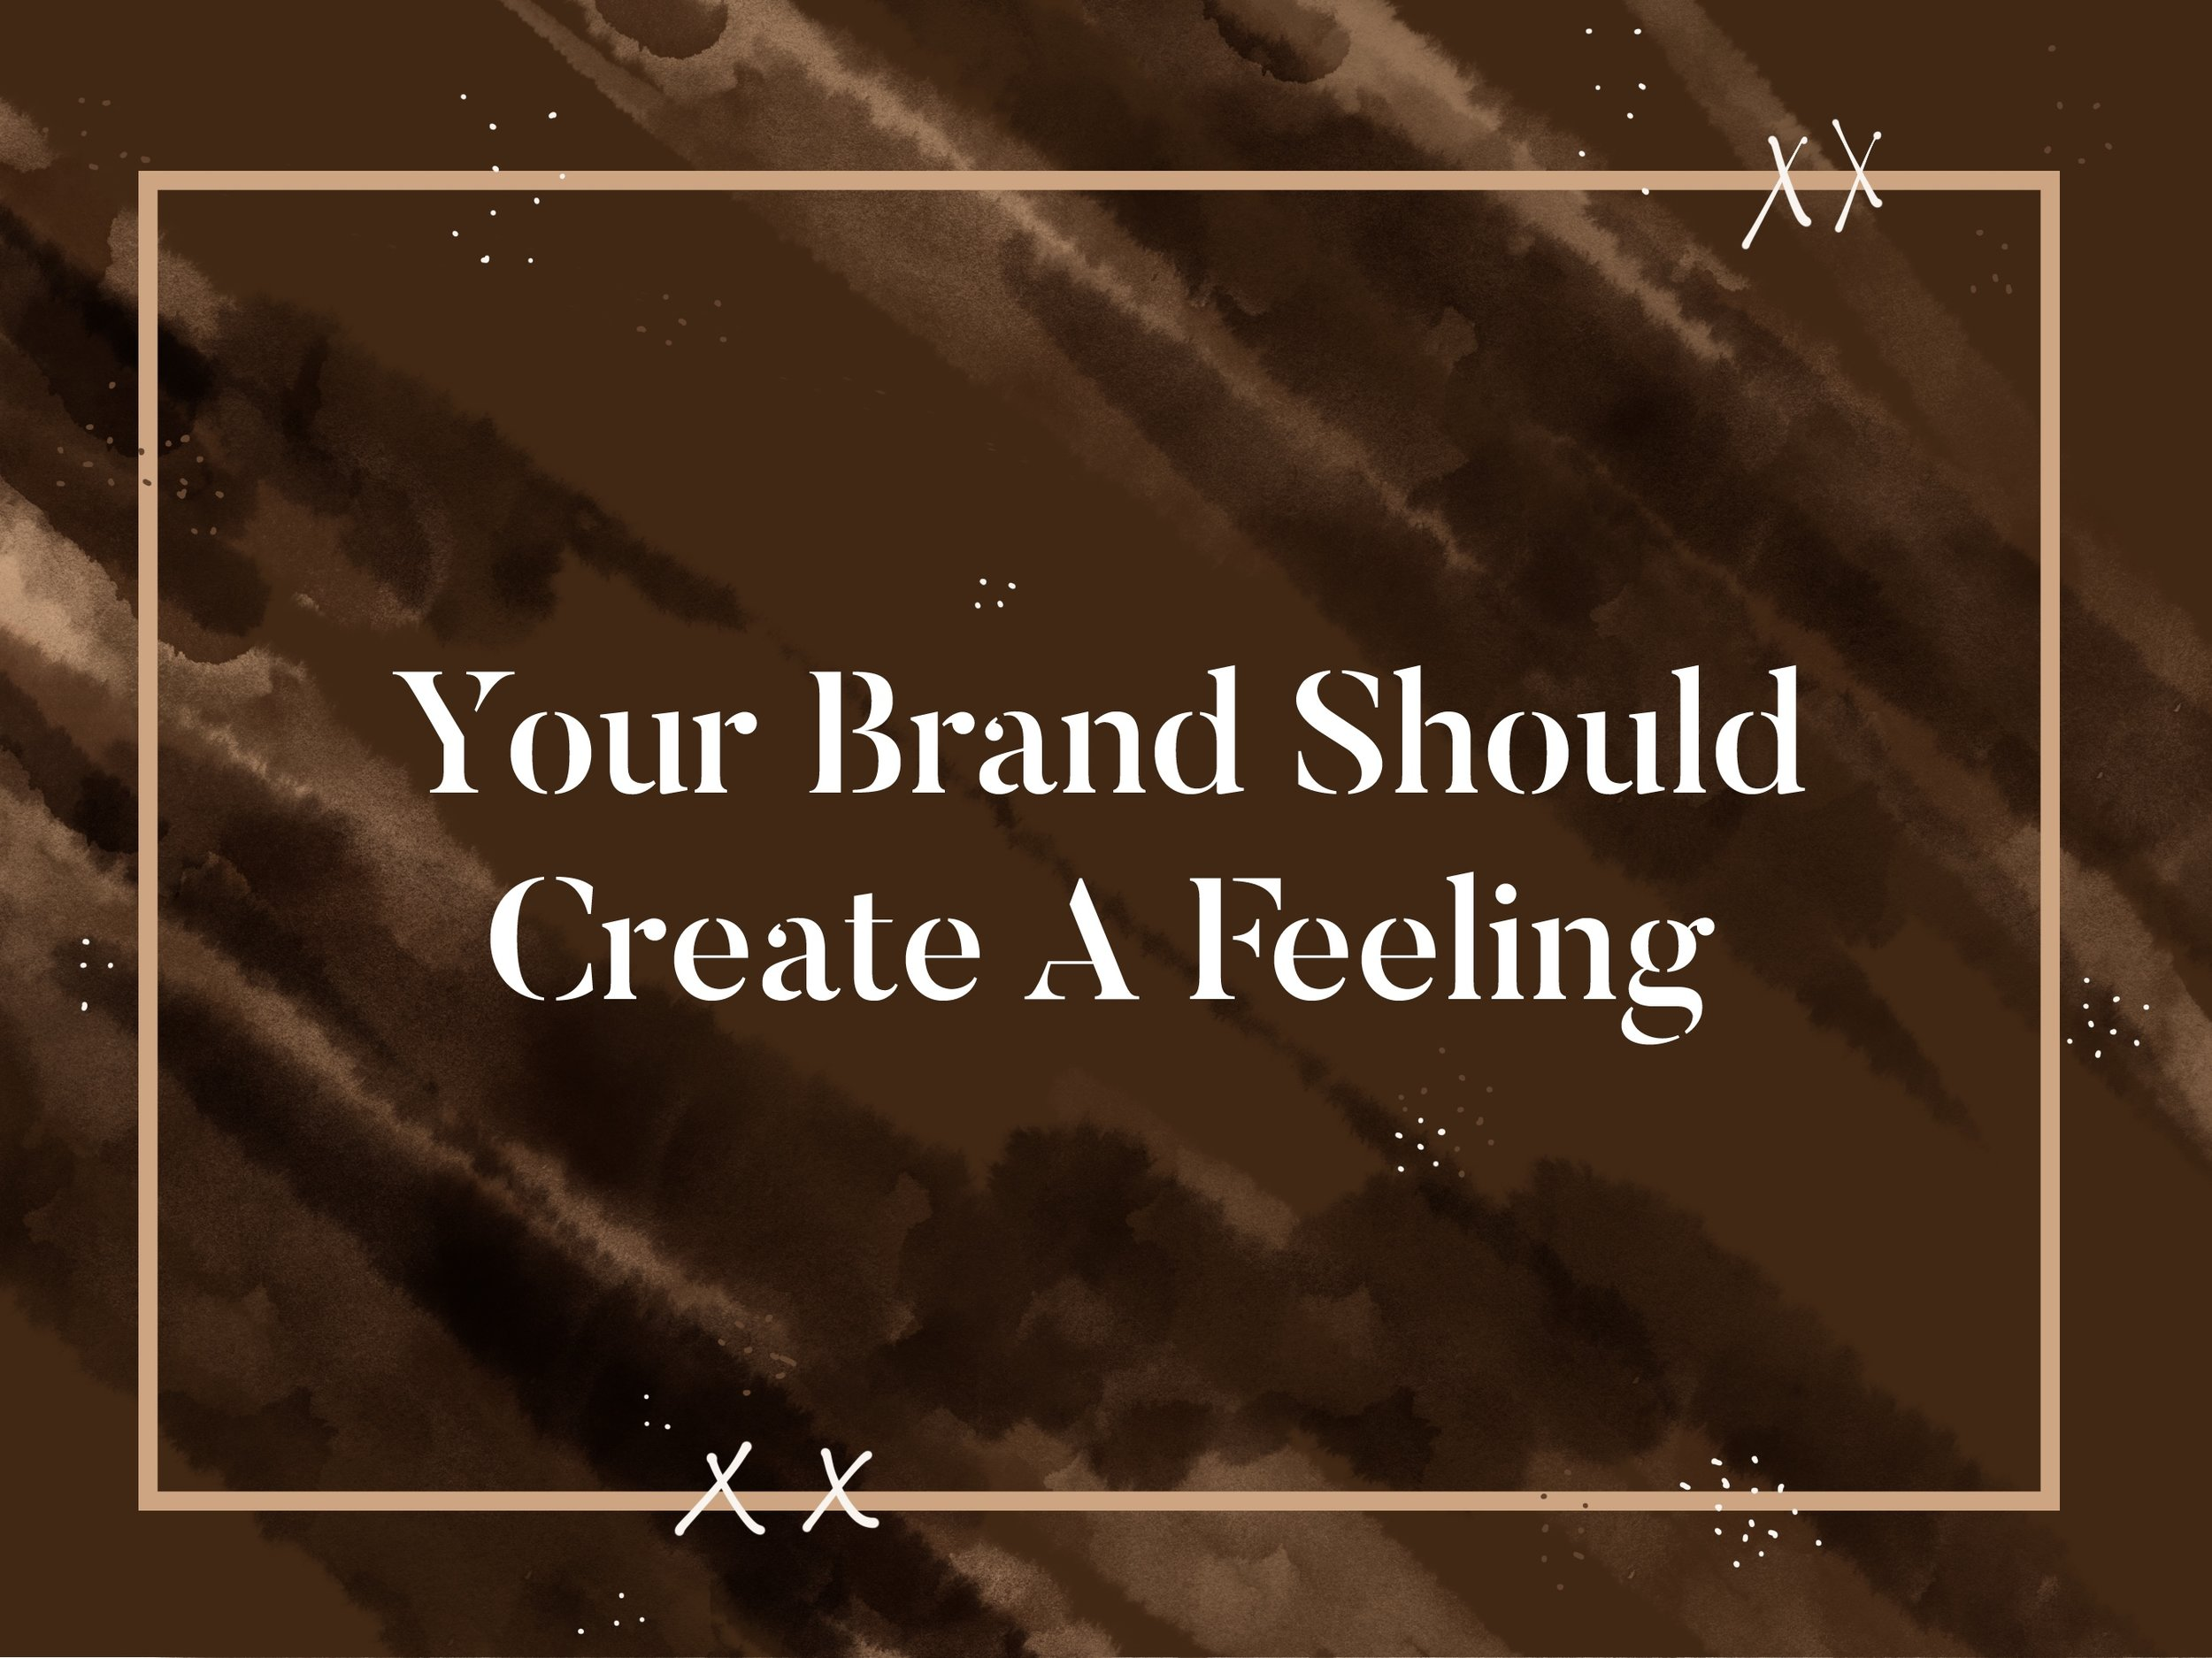 Your brand should create a feeling